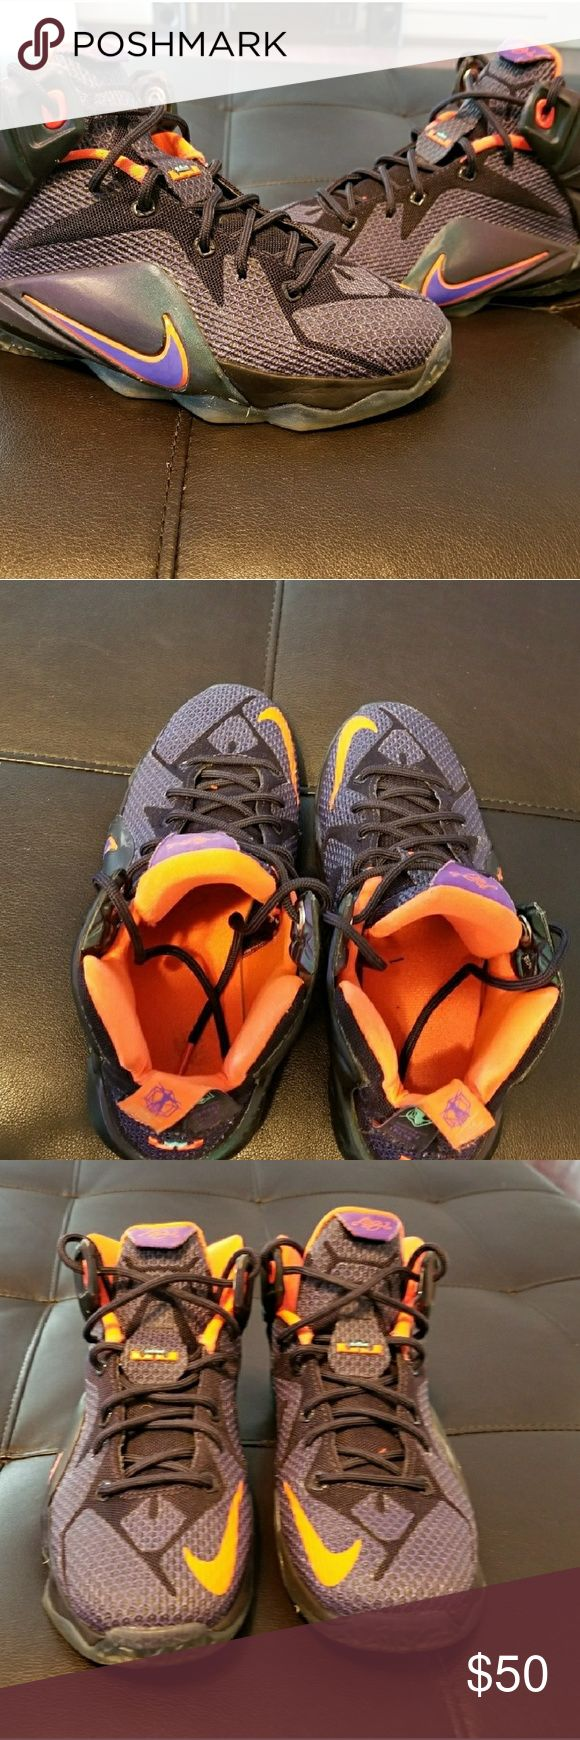 Lebron James Sneakers. Grade school size 4 Nike Lebron James..Big kids size 4...Excellent condition..worn only 2x Nike Shoes Sneakers